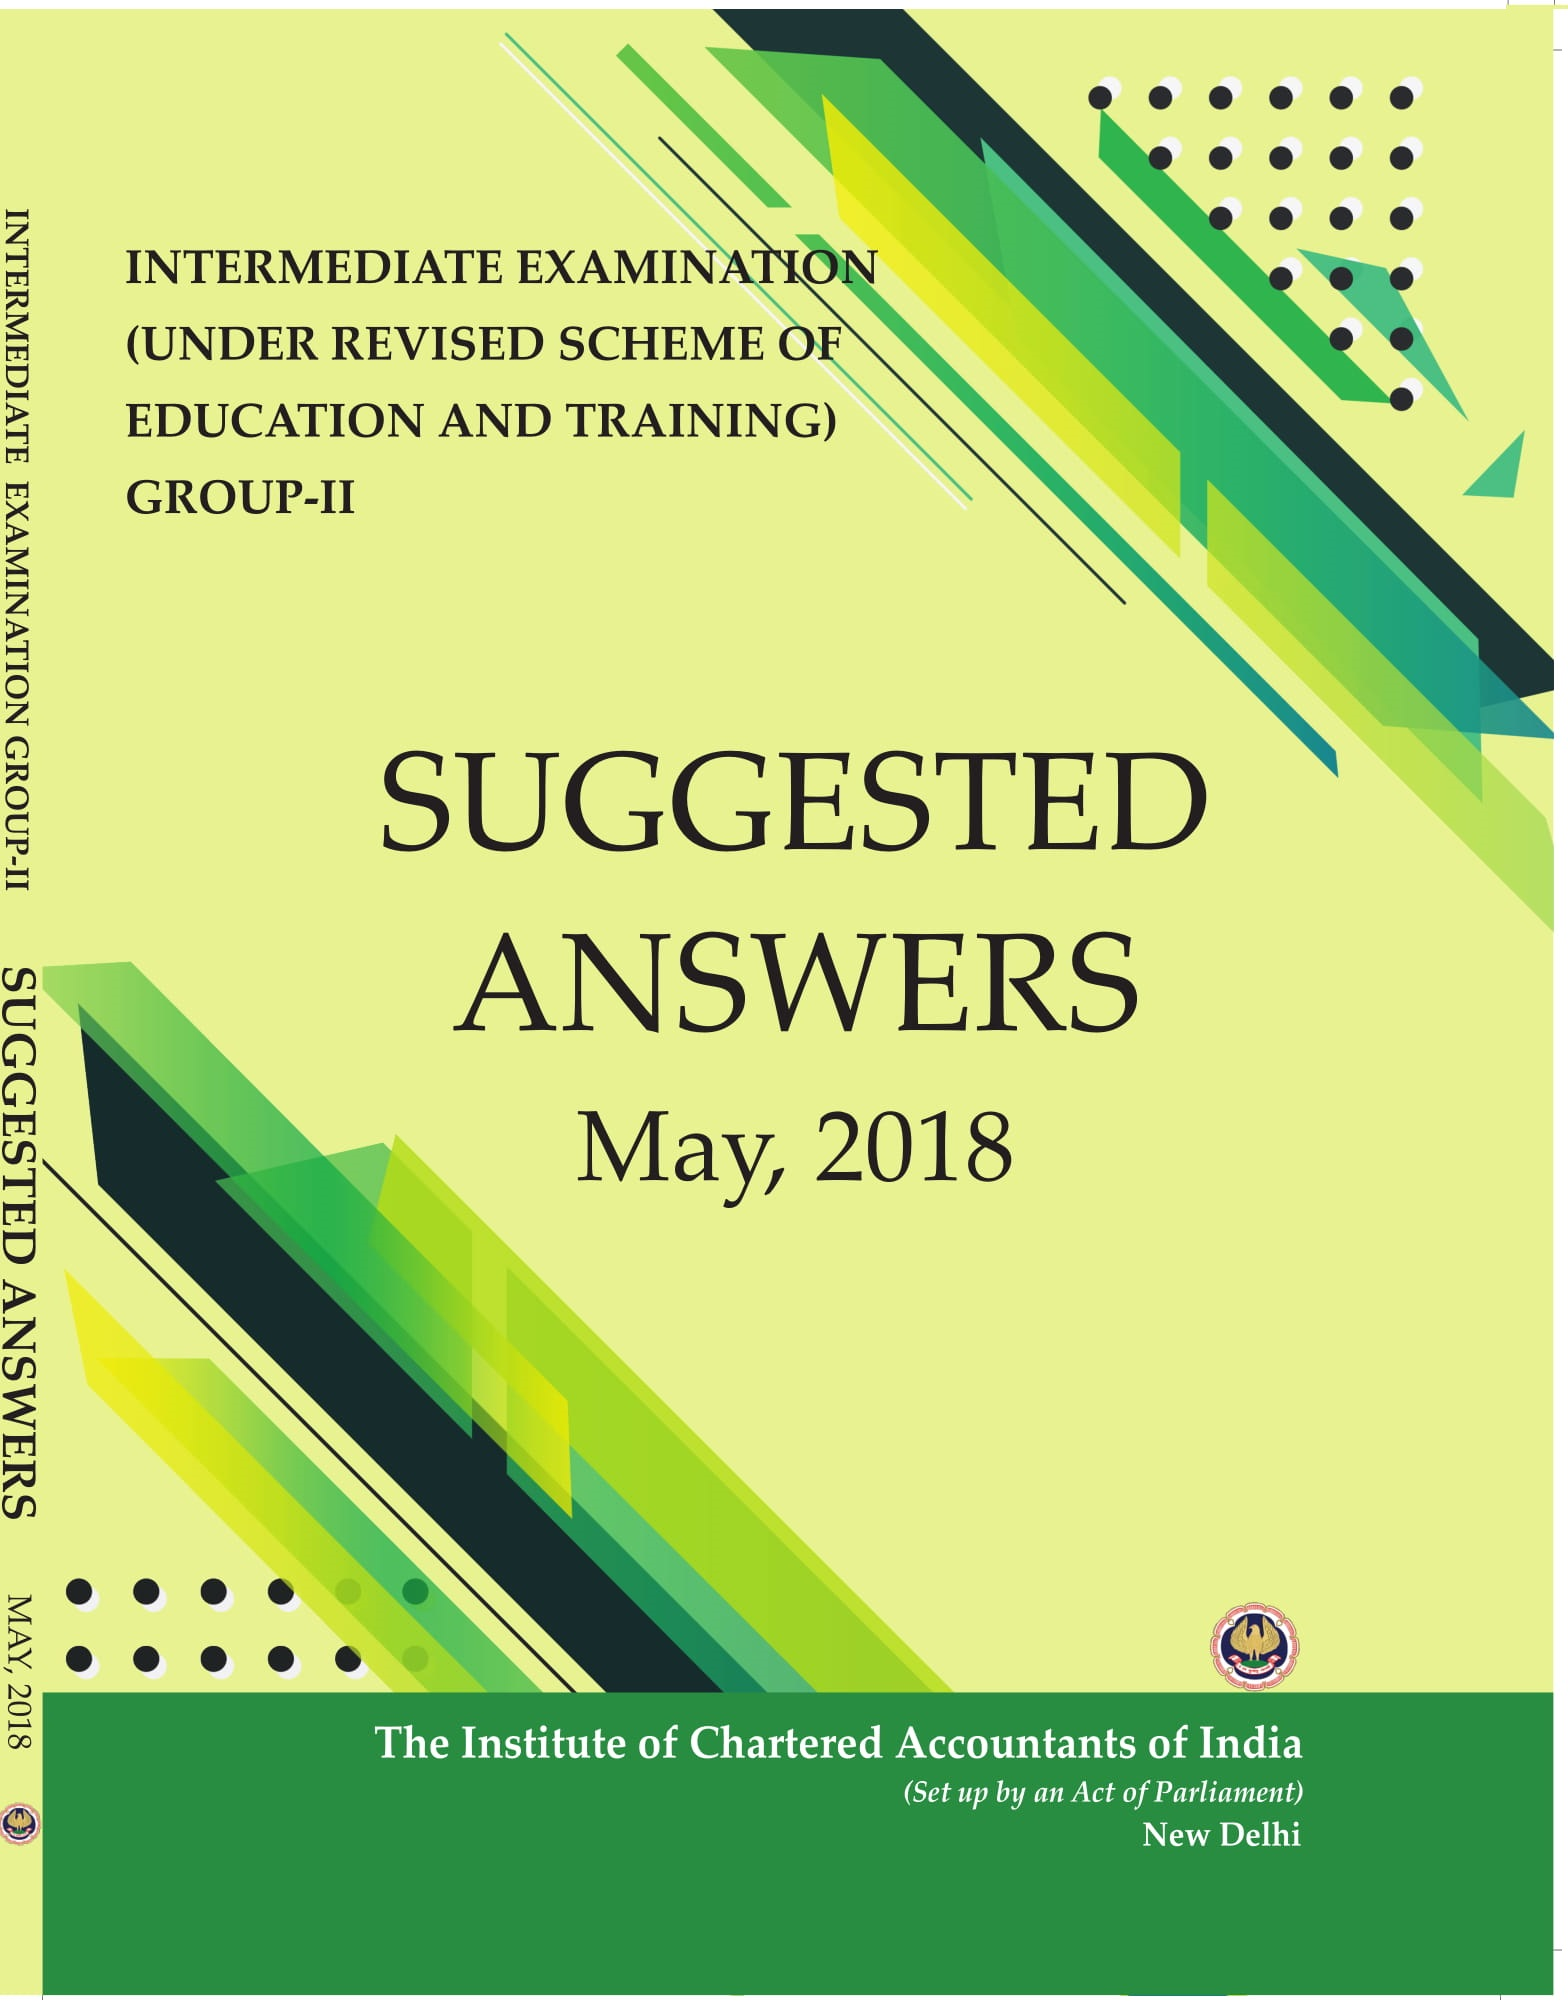 Intermediate Examination (Under Revised Scheme of Education and Training) Group-2 Suggested Answers May, 2018